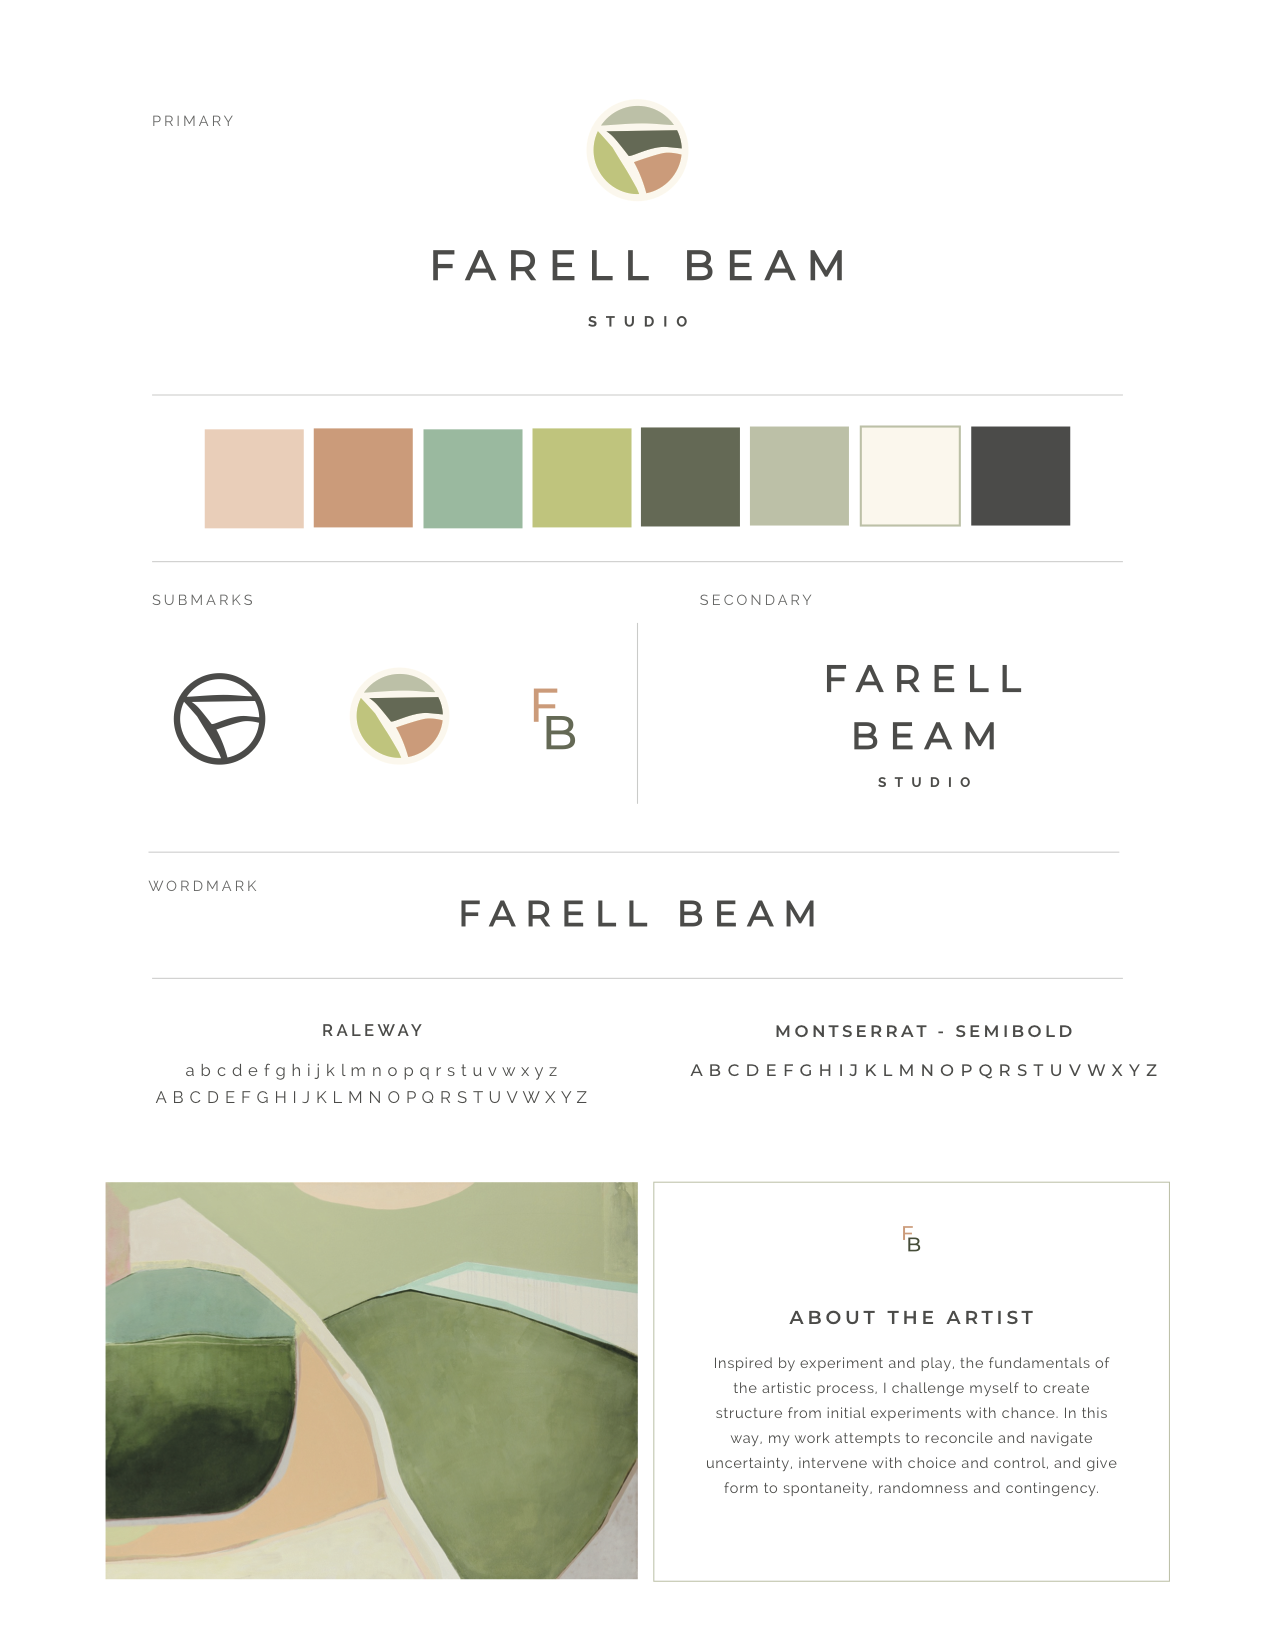 A selection of a branding suite completed for Bay-area artist Farell Beam.